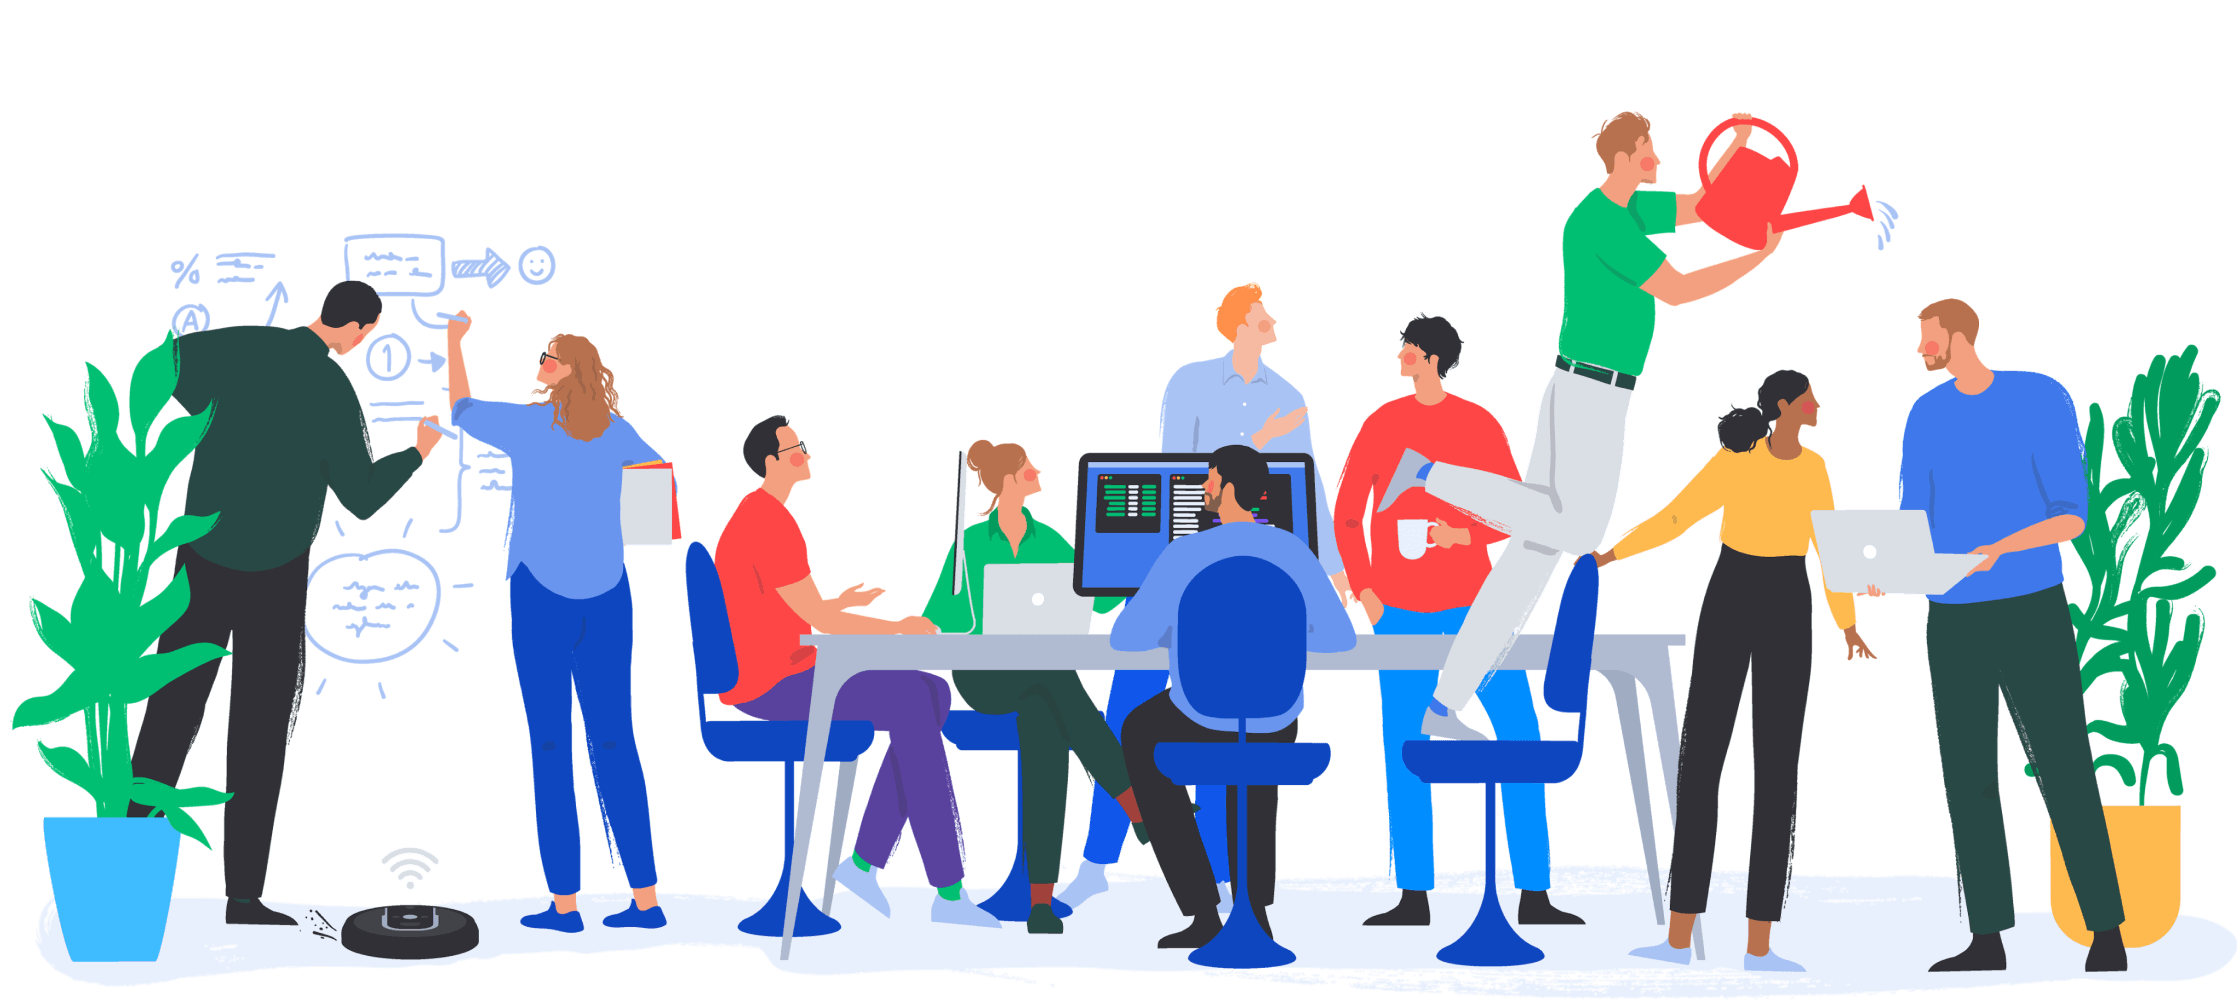 Illustration of the Opteo office and it's team members.